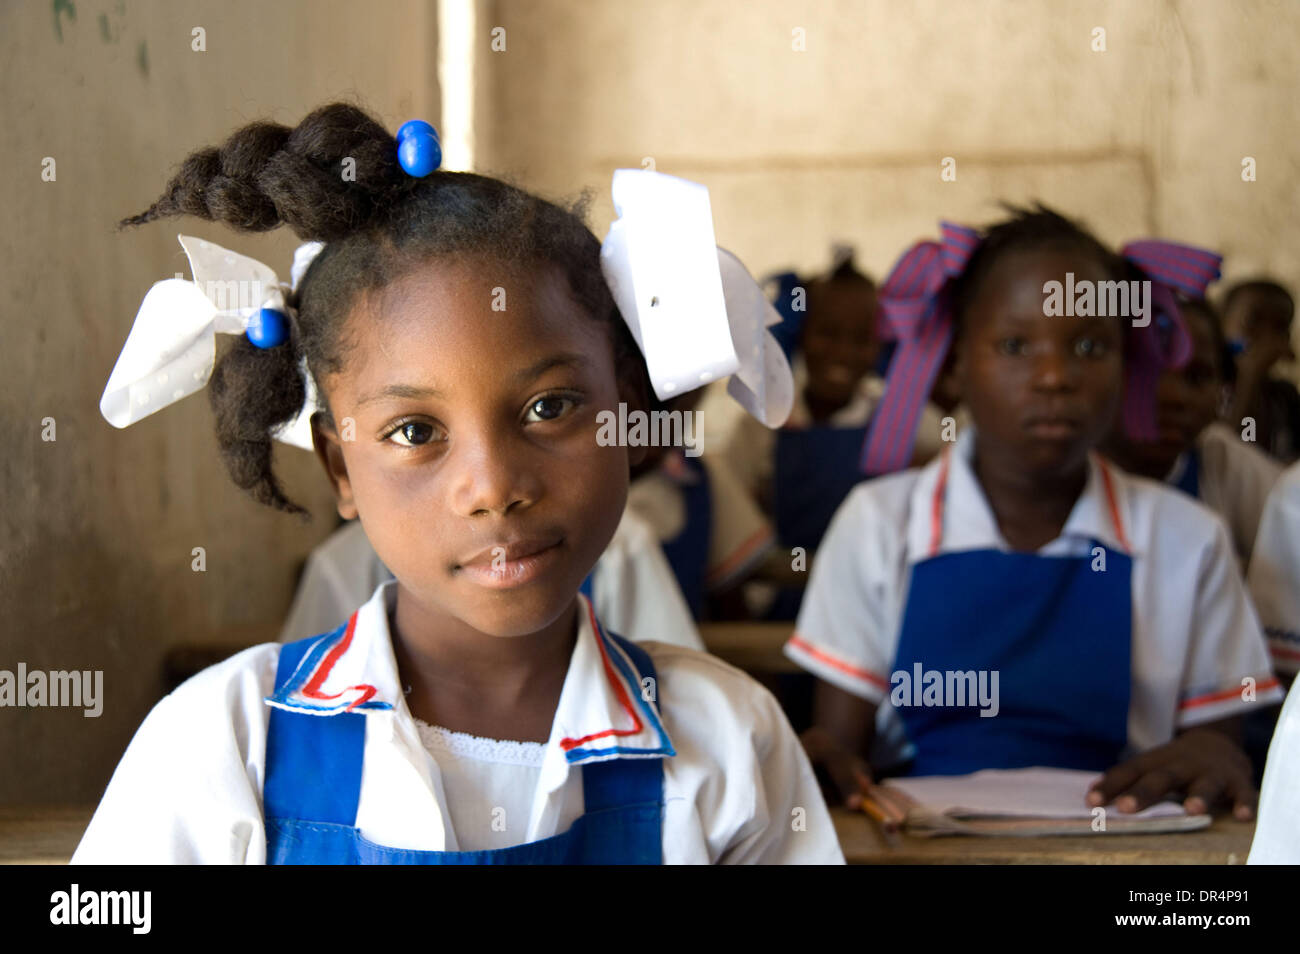 Apr 21, 2009 - Gonaives, Haiti - Young female students in a classroom which was reopened after Hurricanes Ike, Hanna Stock Photo